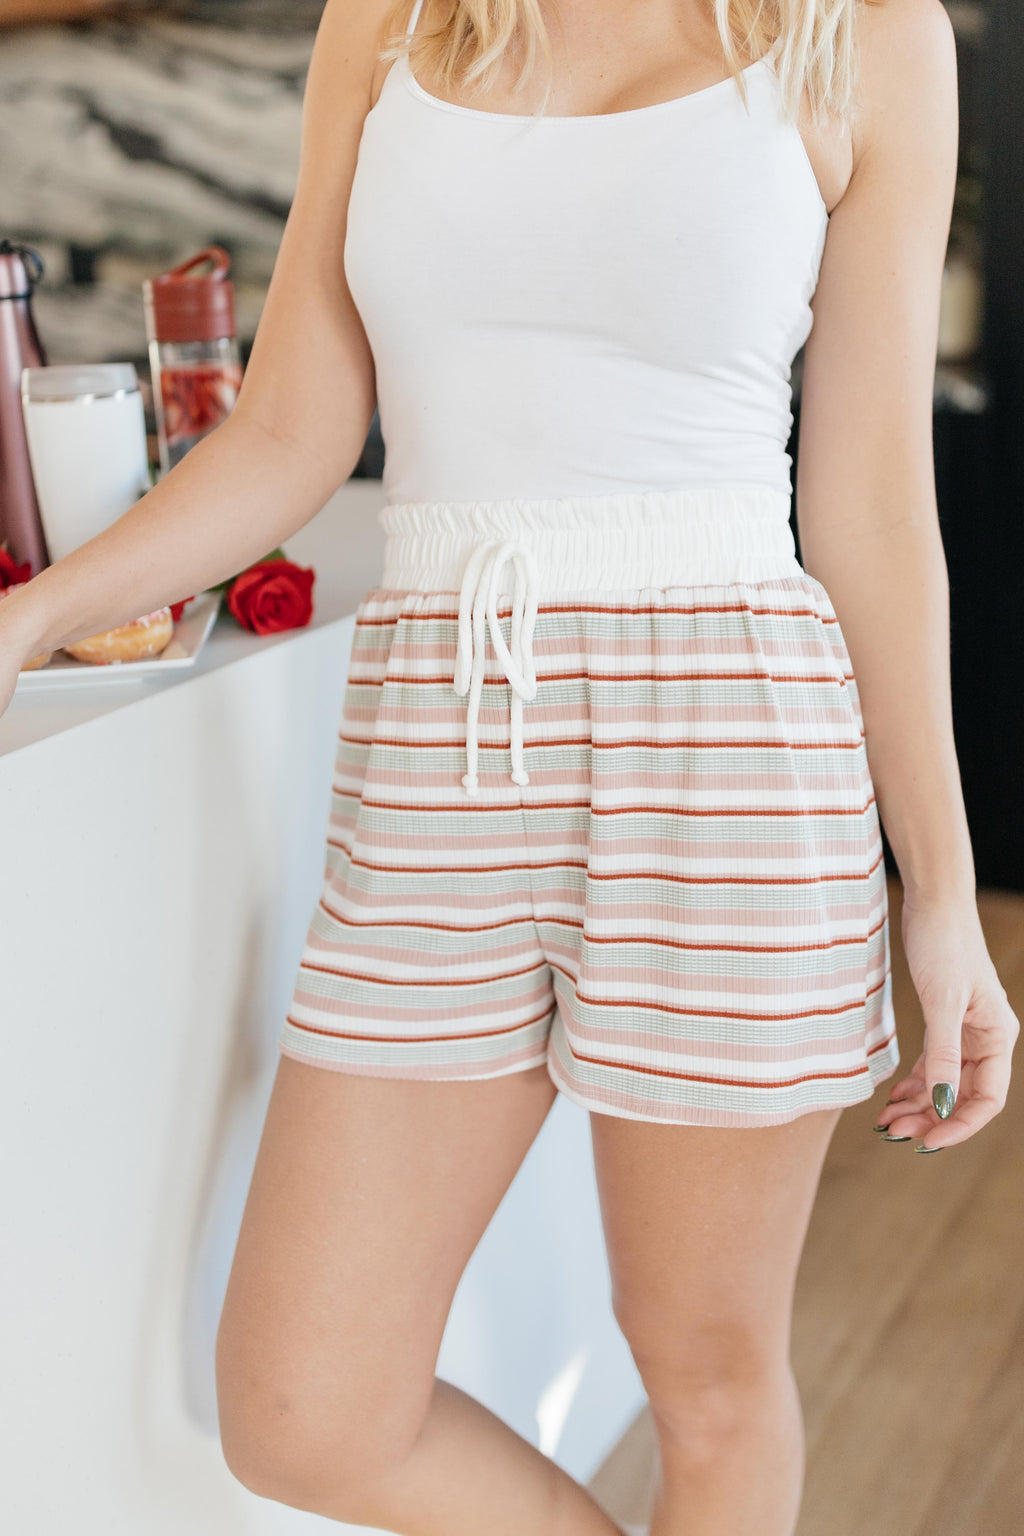 Emery Striped Shorts-1-14-2021, 1XL, 2XL, 3XL, Bottoms, Group A, Group B, Group C, Group T, Group U, Group X, Group Y, Group Z, Large, Made in the USA, Medium, Small, XL, XS-Womens Artisan USA American Made Clothing Accessories